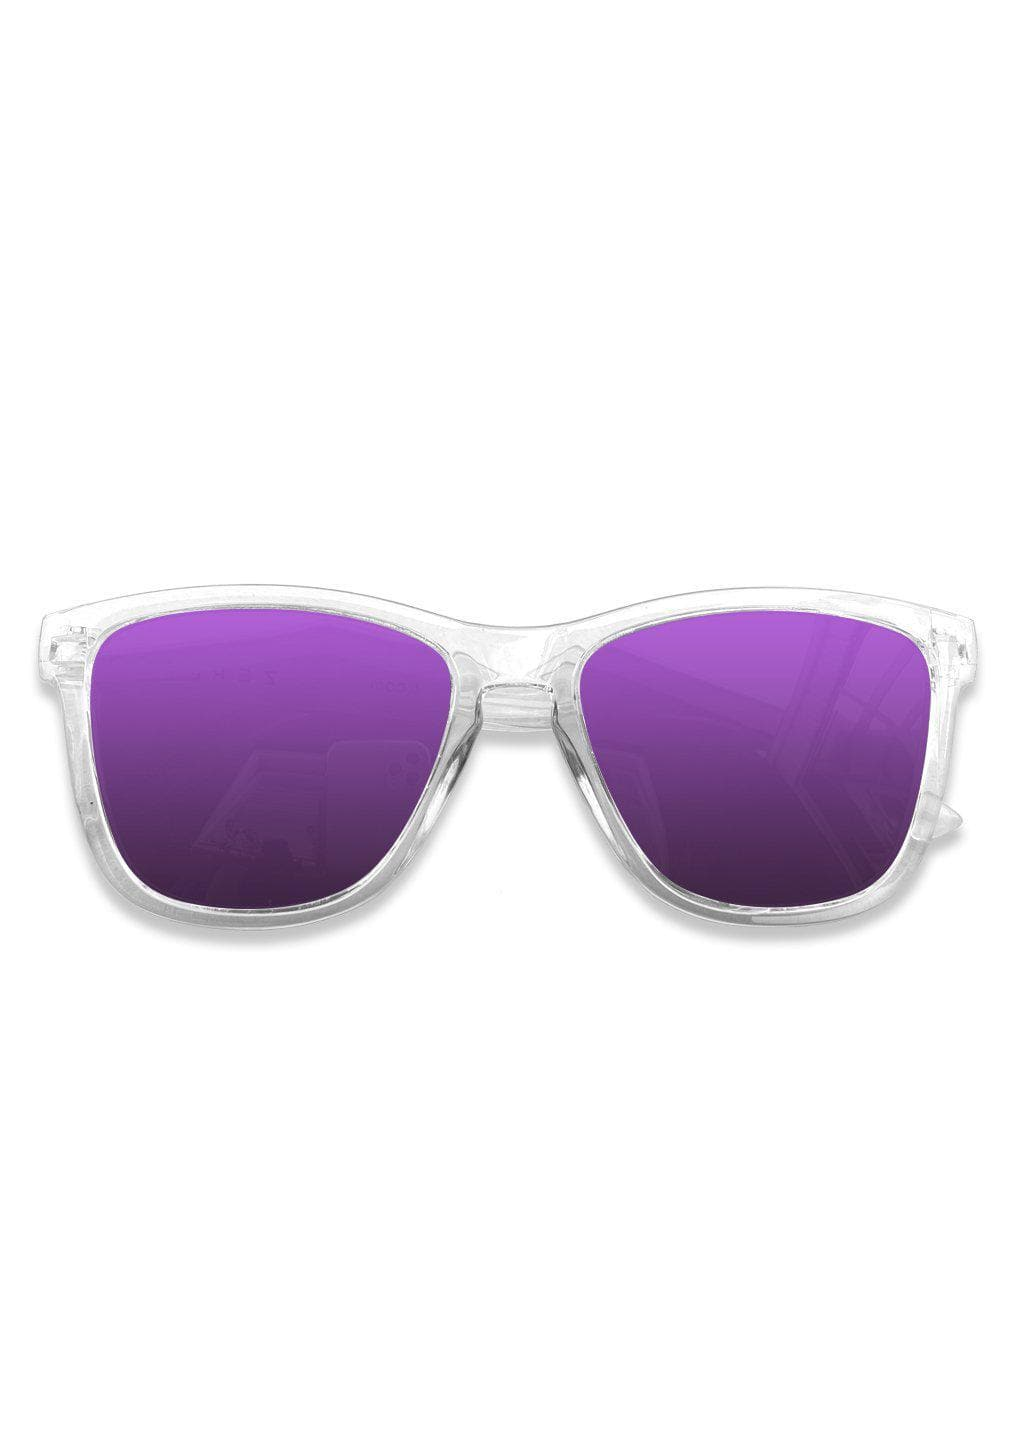 Our Mood V2 is an improved version of our last wayfarers. Plastic body for great quality and durabilty. This is Lucid with transparent frame and purple mirror lenses. From the front.